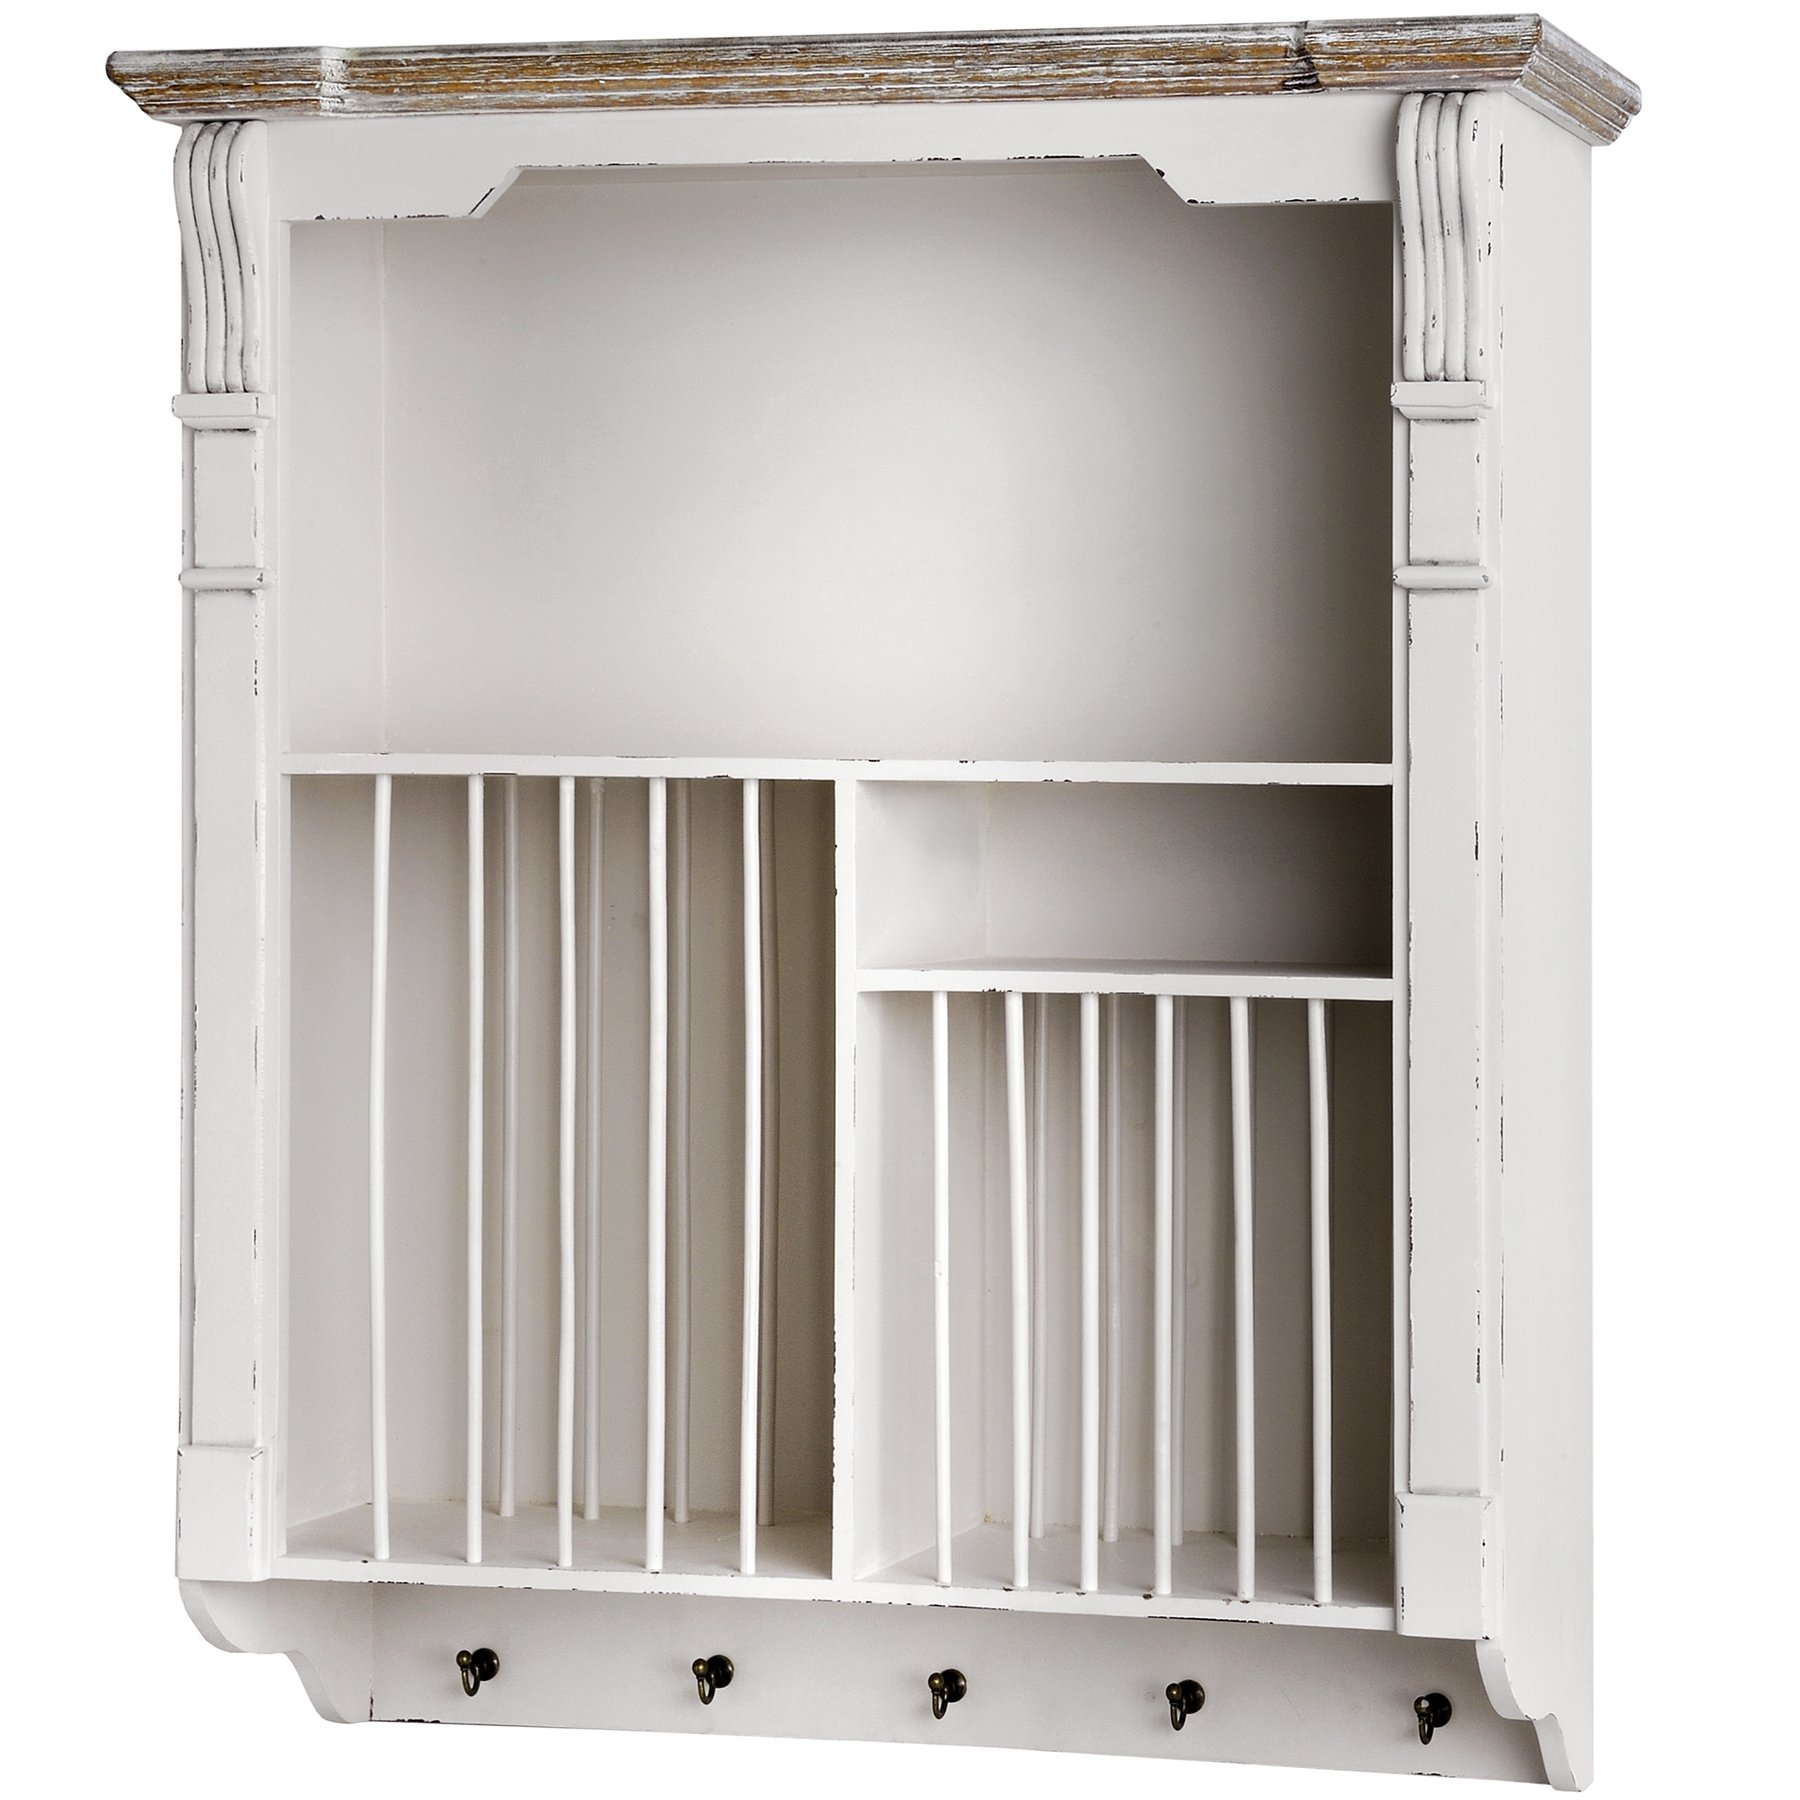 Hill Interiors New England Wooden Plate Rack Cabinet (One Size) (White)